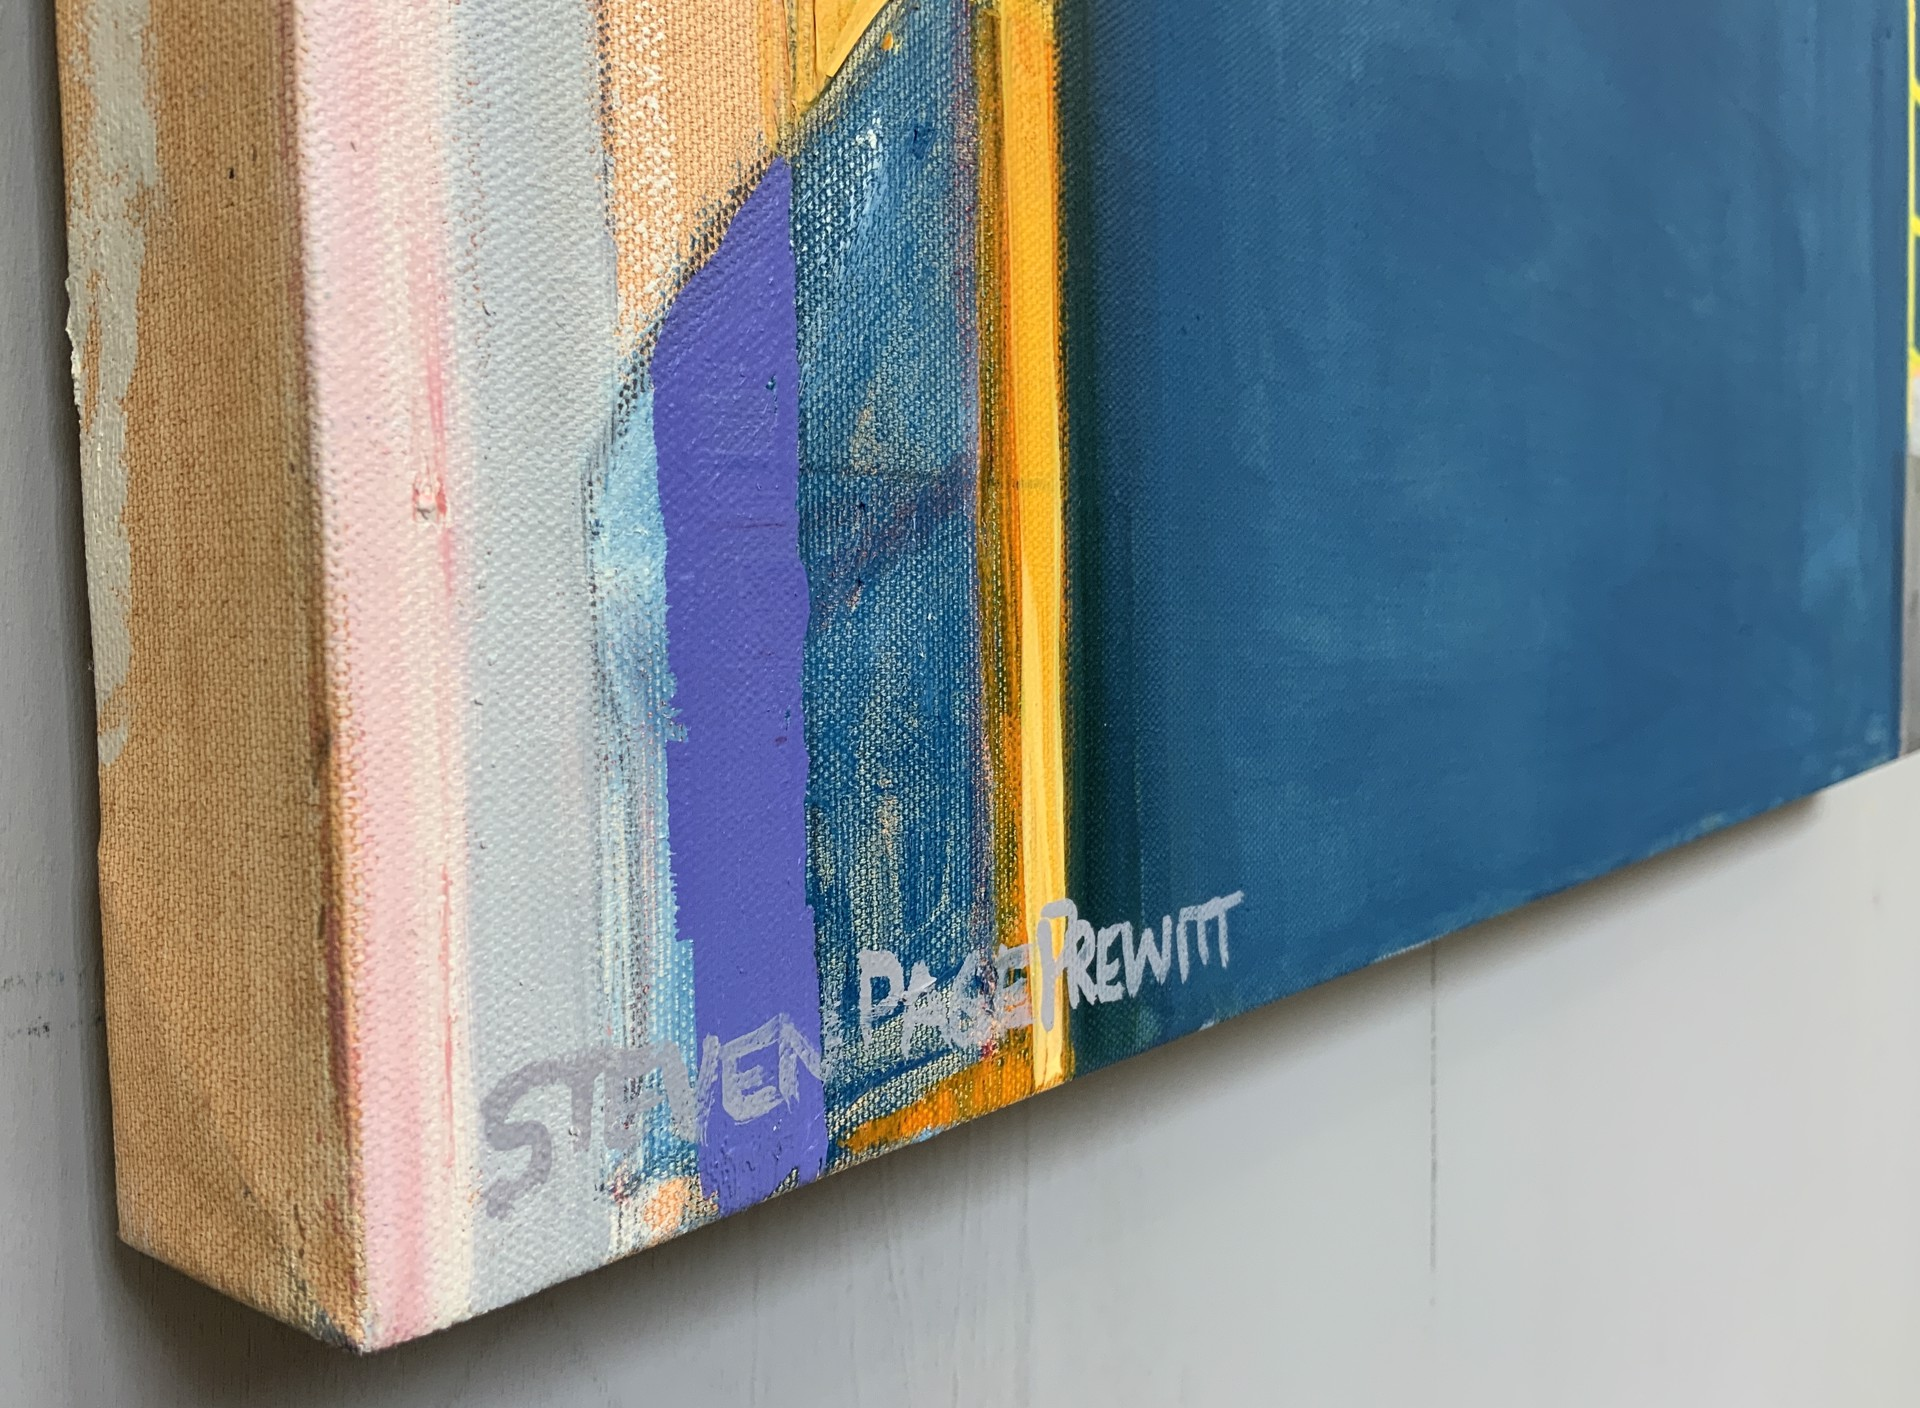 Abstract Landscape 18 by Steven Page Prewitt